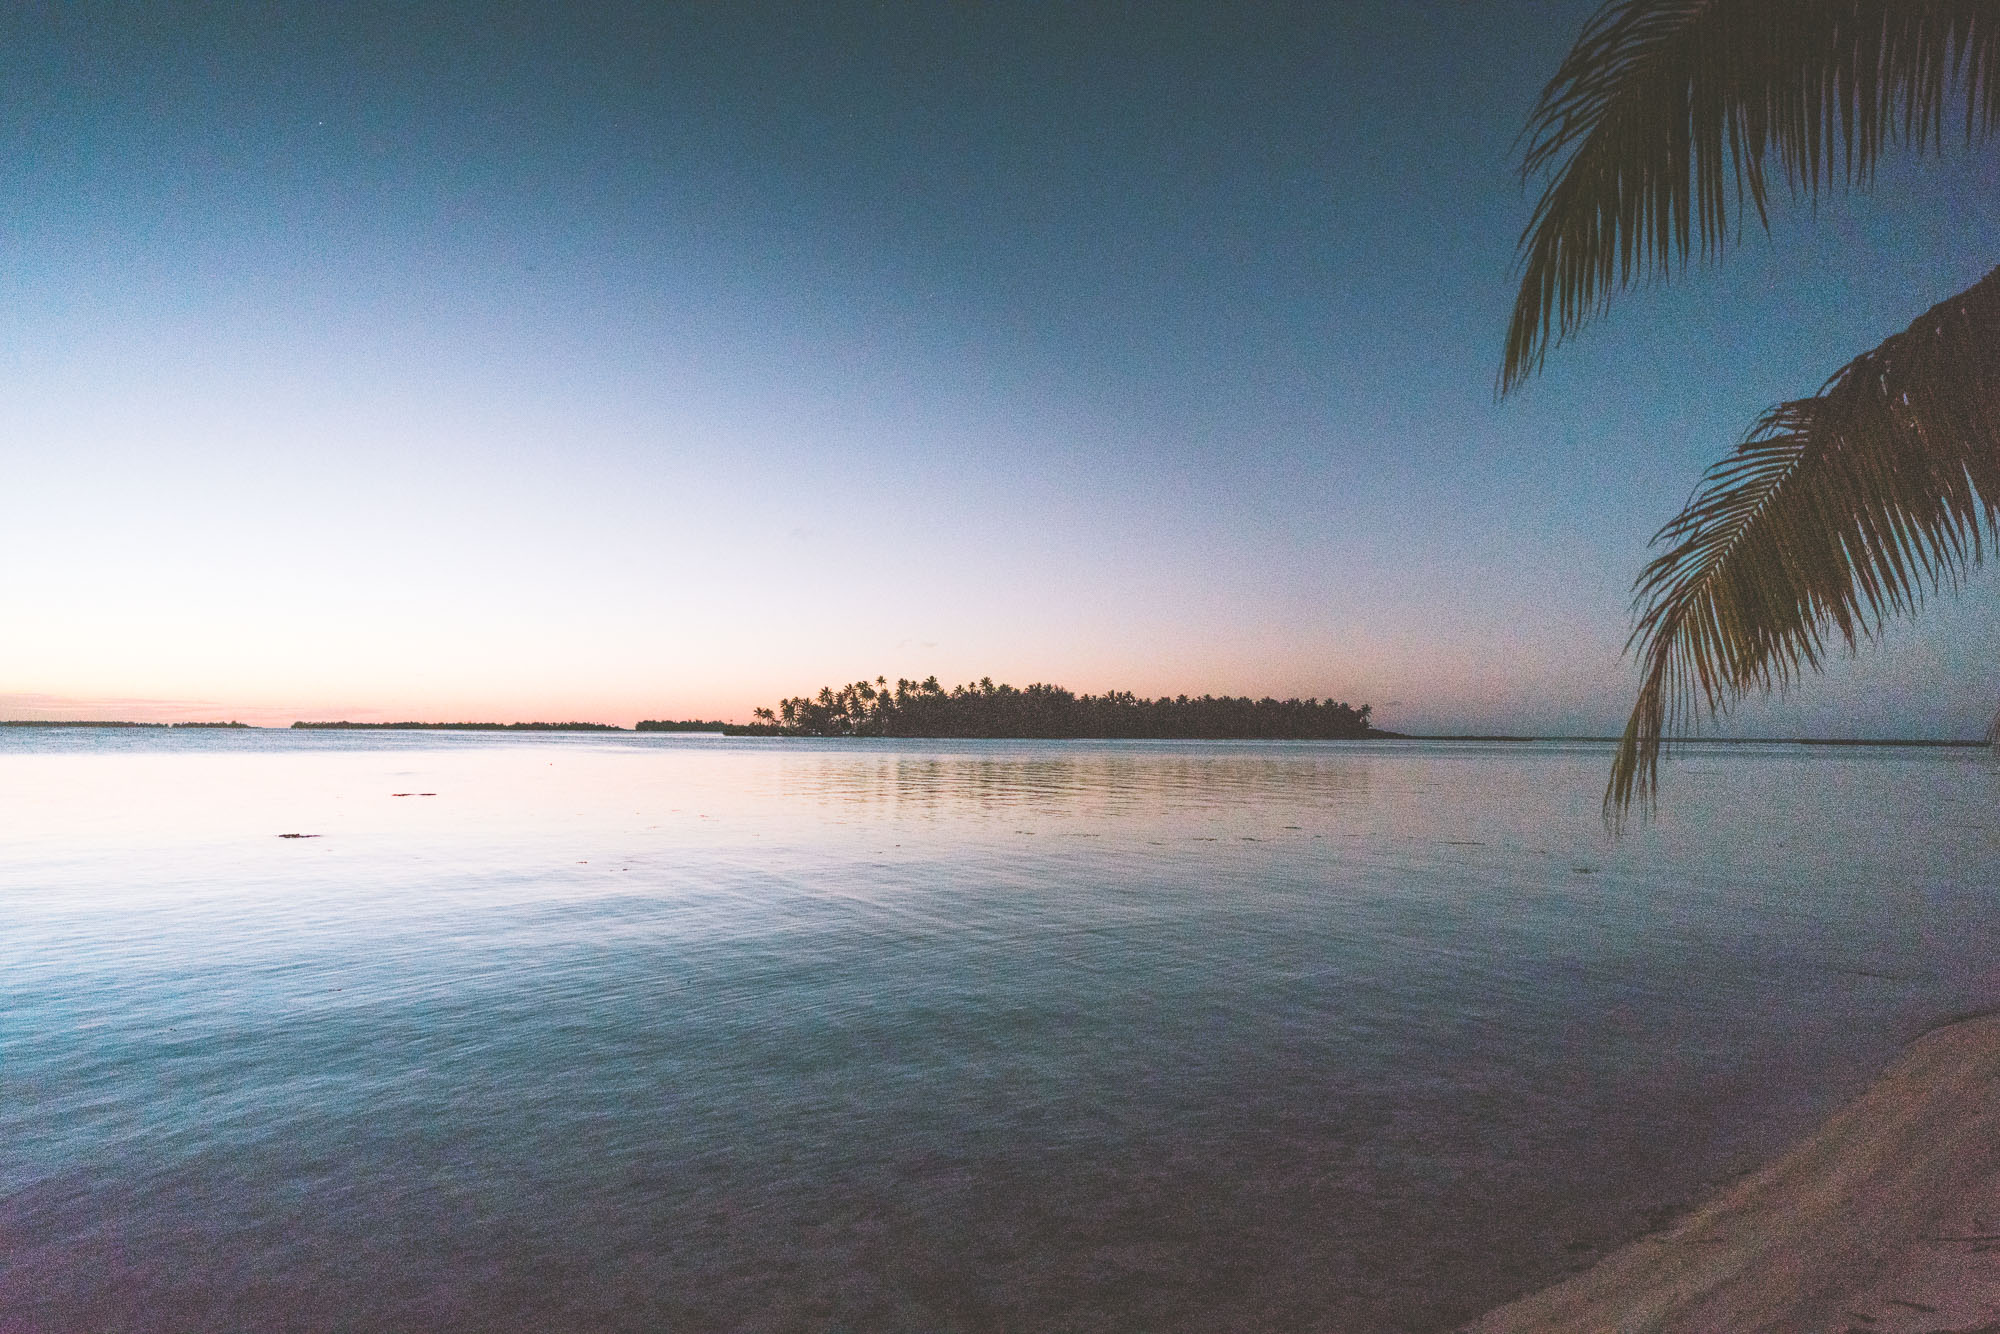 Sunset over the islands at Vahine Island Private Resort in Tahiti via @finduslost